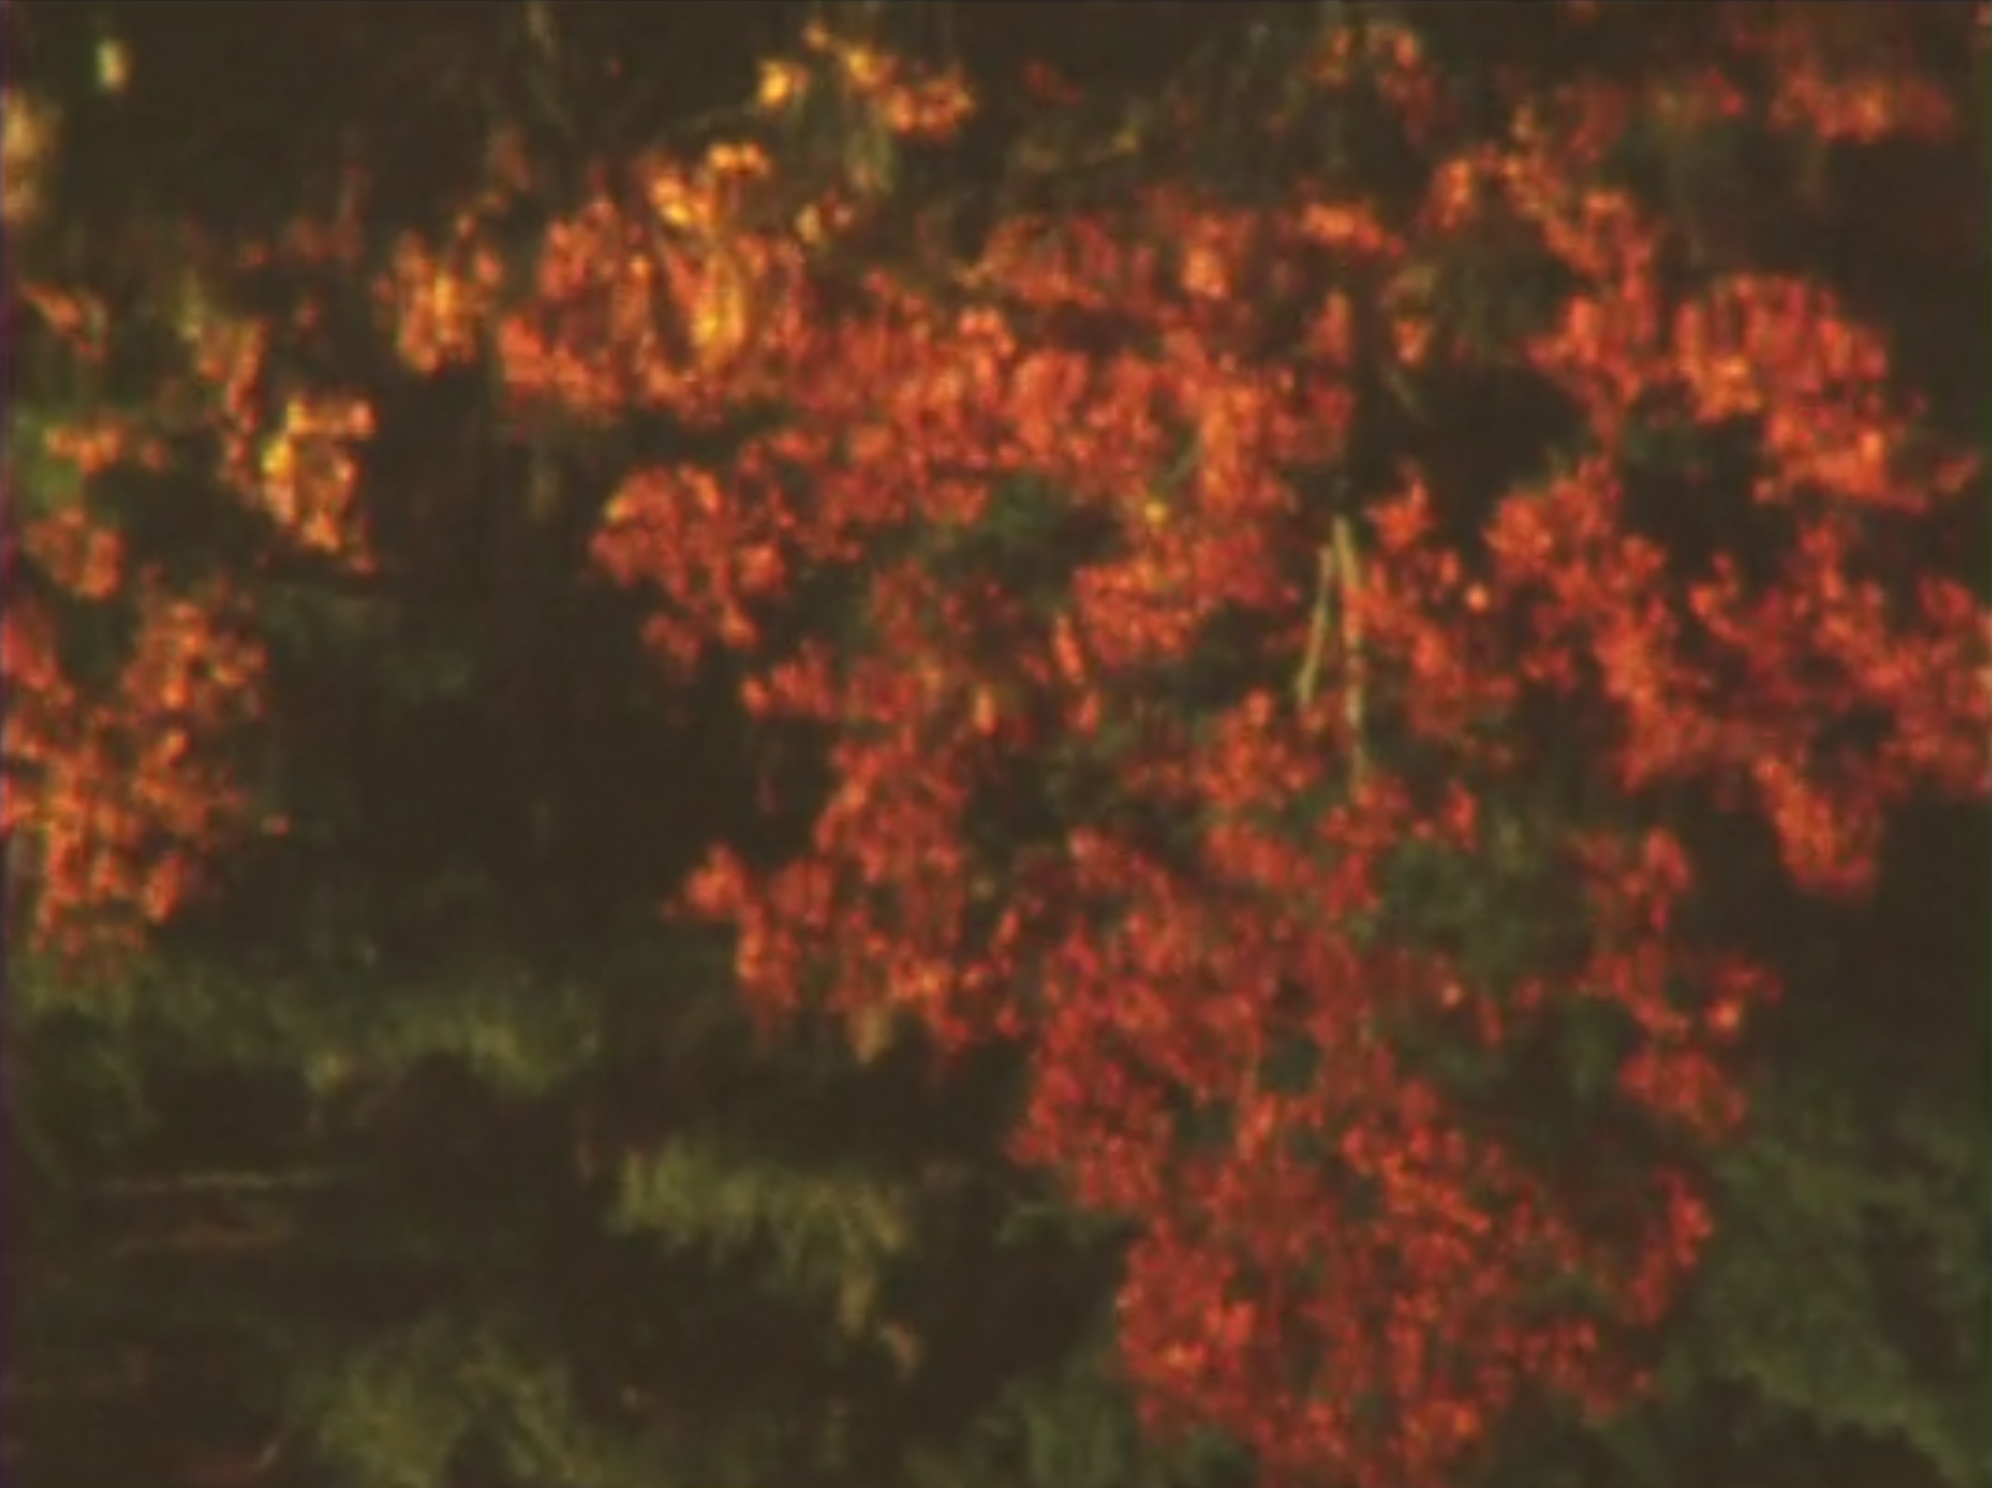 Customary Territory [2015] super 8, 3:25 - Daybreak in a tranquil New England setting. Reflection, refraction and decay.